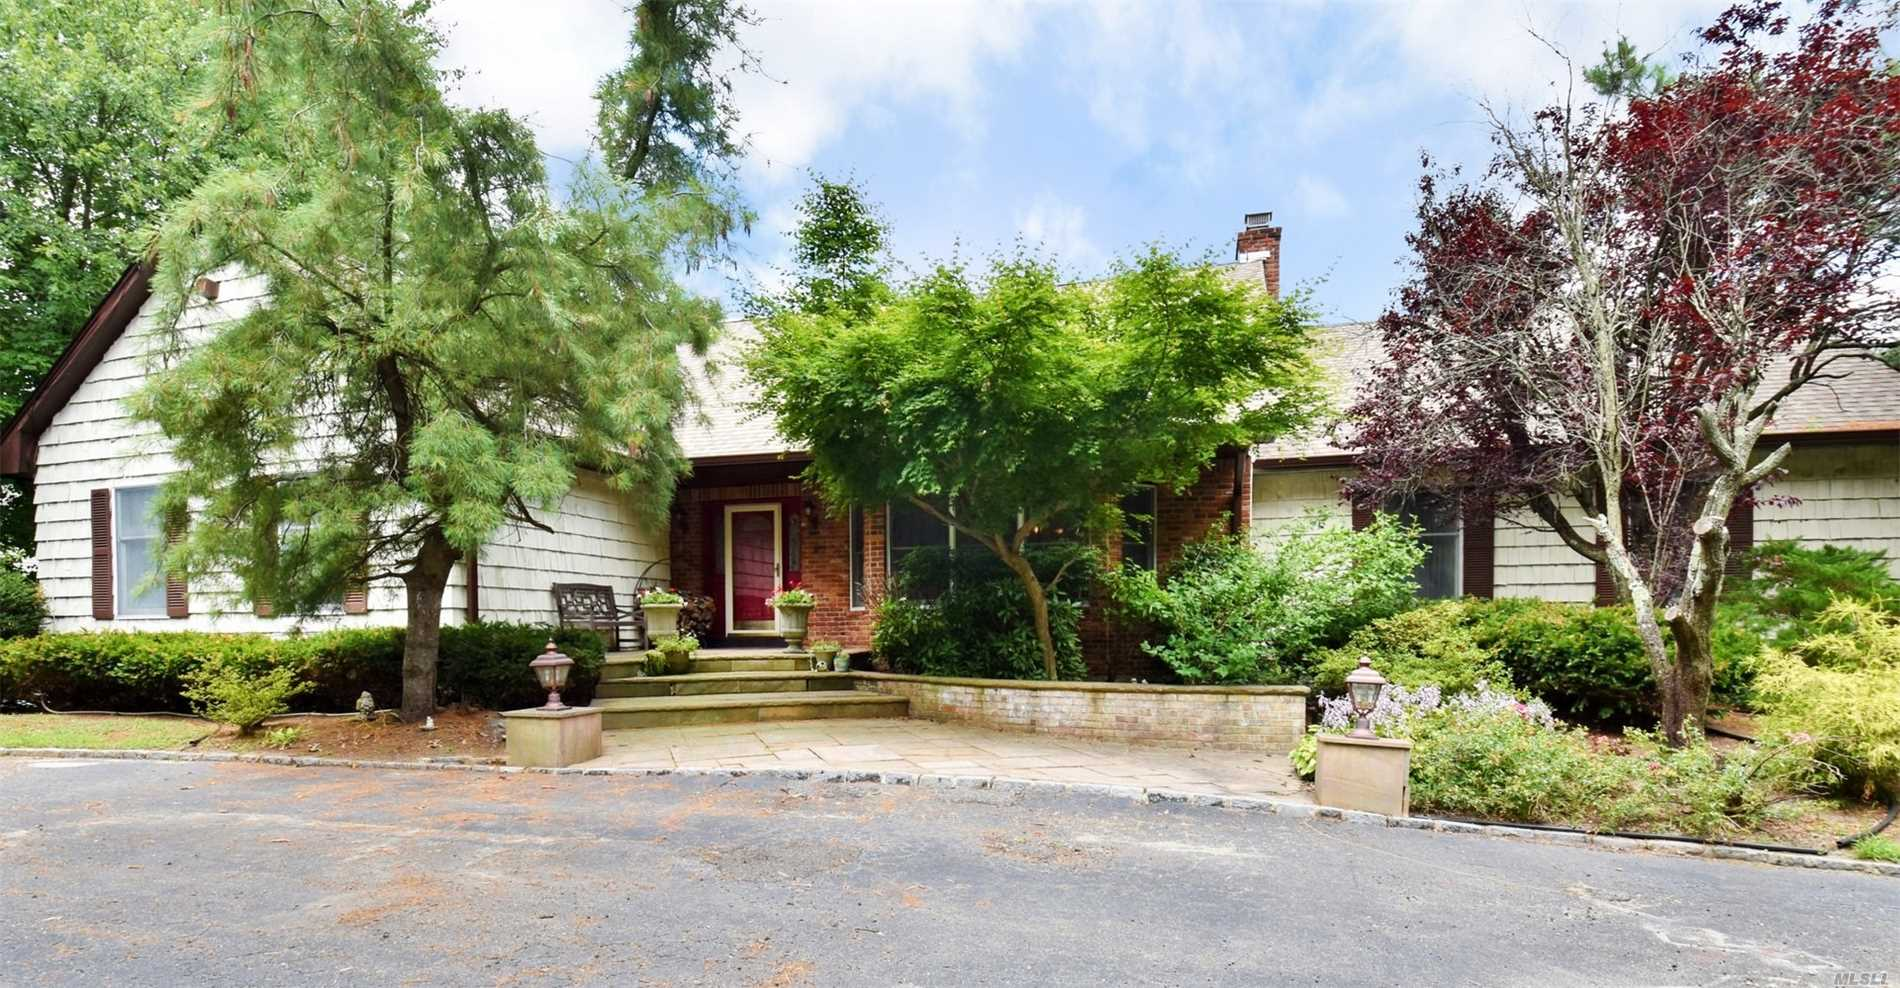 Owner Wants To Hear All Offers!!! 5700 Sq Ft Of Living Space At $140. A Sq Ft! Entertainers Delight In A Million Dollar Plus Location!! 5 Bedroom, 5 Bath Is Ideal For Extended Family Or Possible Mother/Daughter. Enjoy An Oversized Chefs Kitchen, Great Room W/ Fieldstone And Cathedral Ceiling, 2 Master Suites, New Baths, New Roof, Updated Electric, 2012 Furnace And More. Park Like Property W/ Specimen Plantings, 20X40 Igp, Circular Drive W/ Belgium Block Aprons, 2500Ft Walk Out Basement!